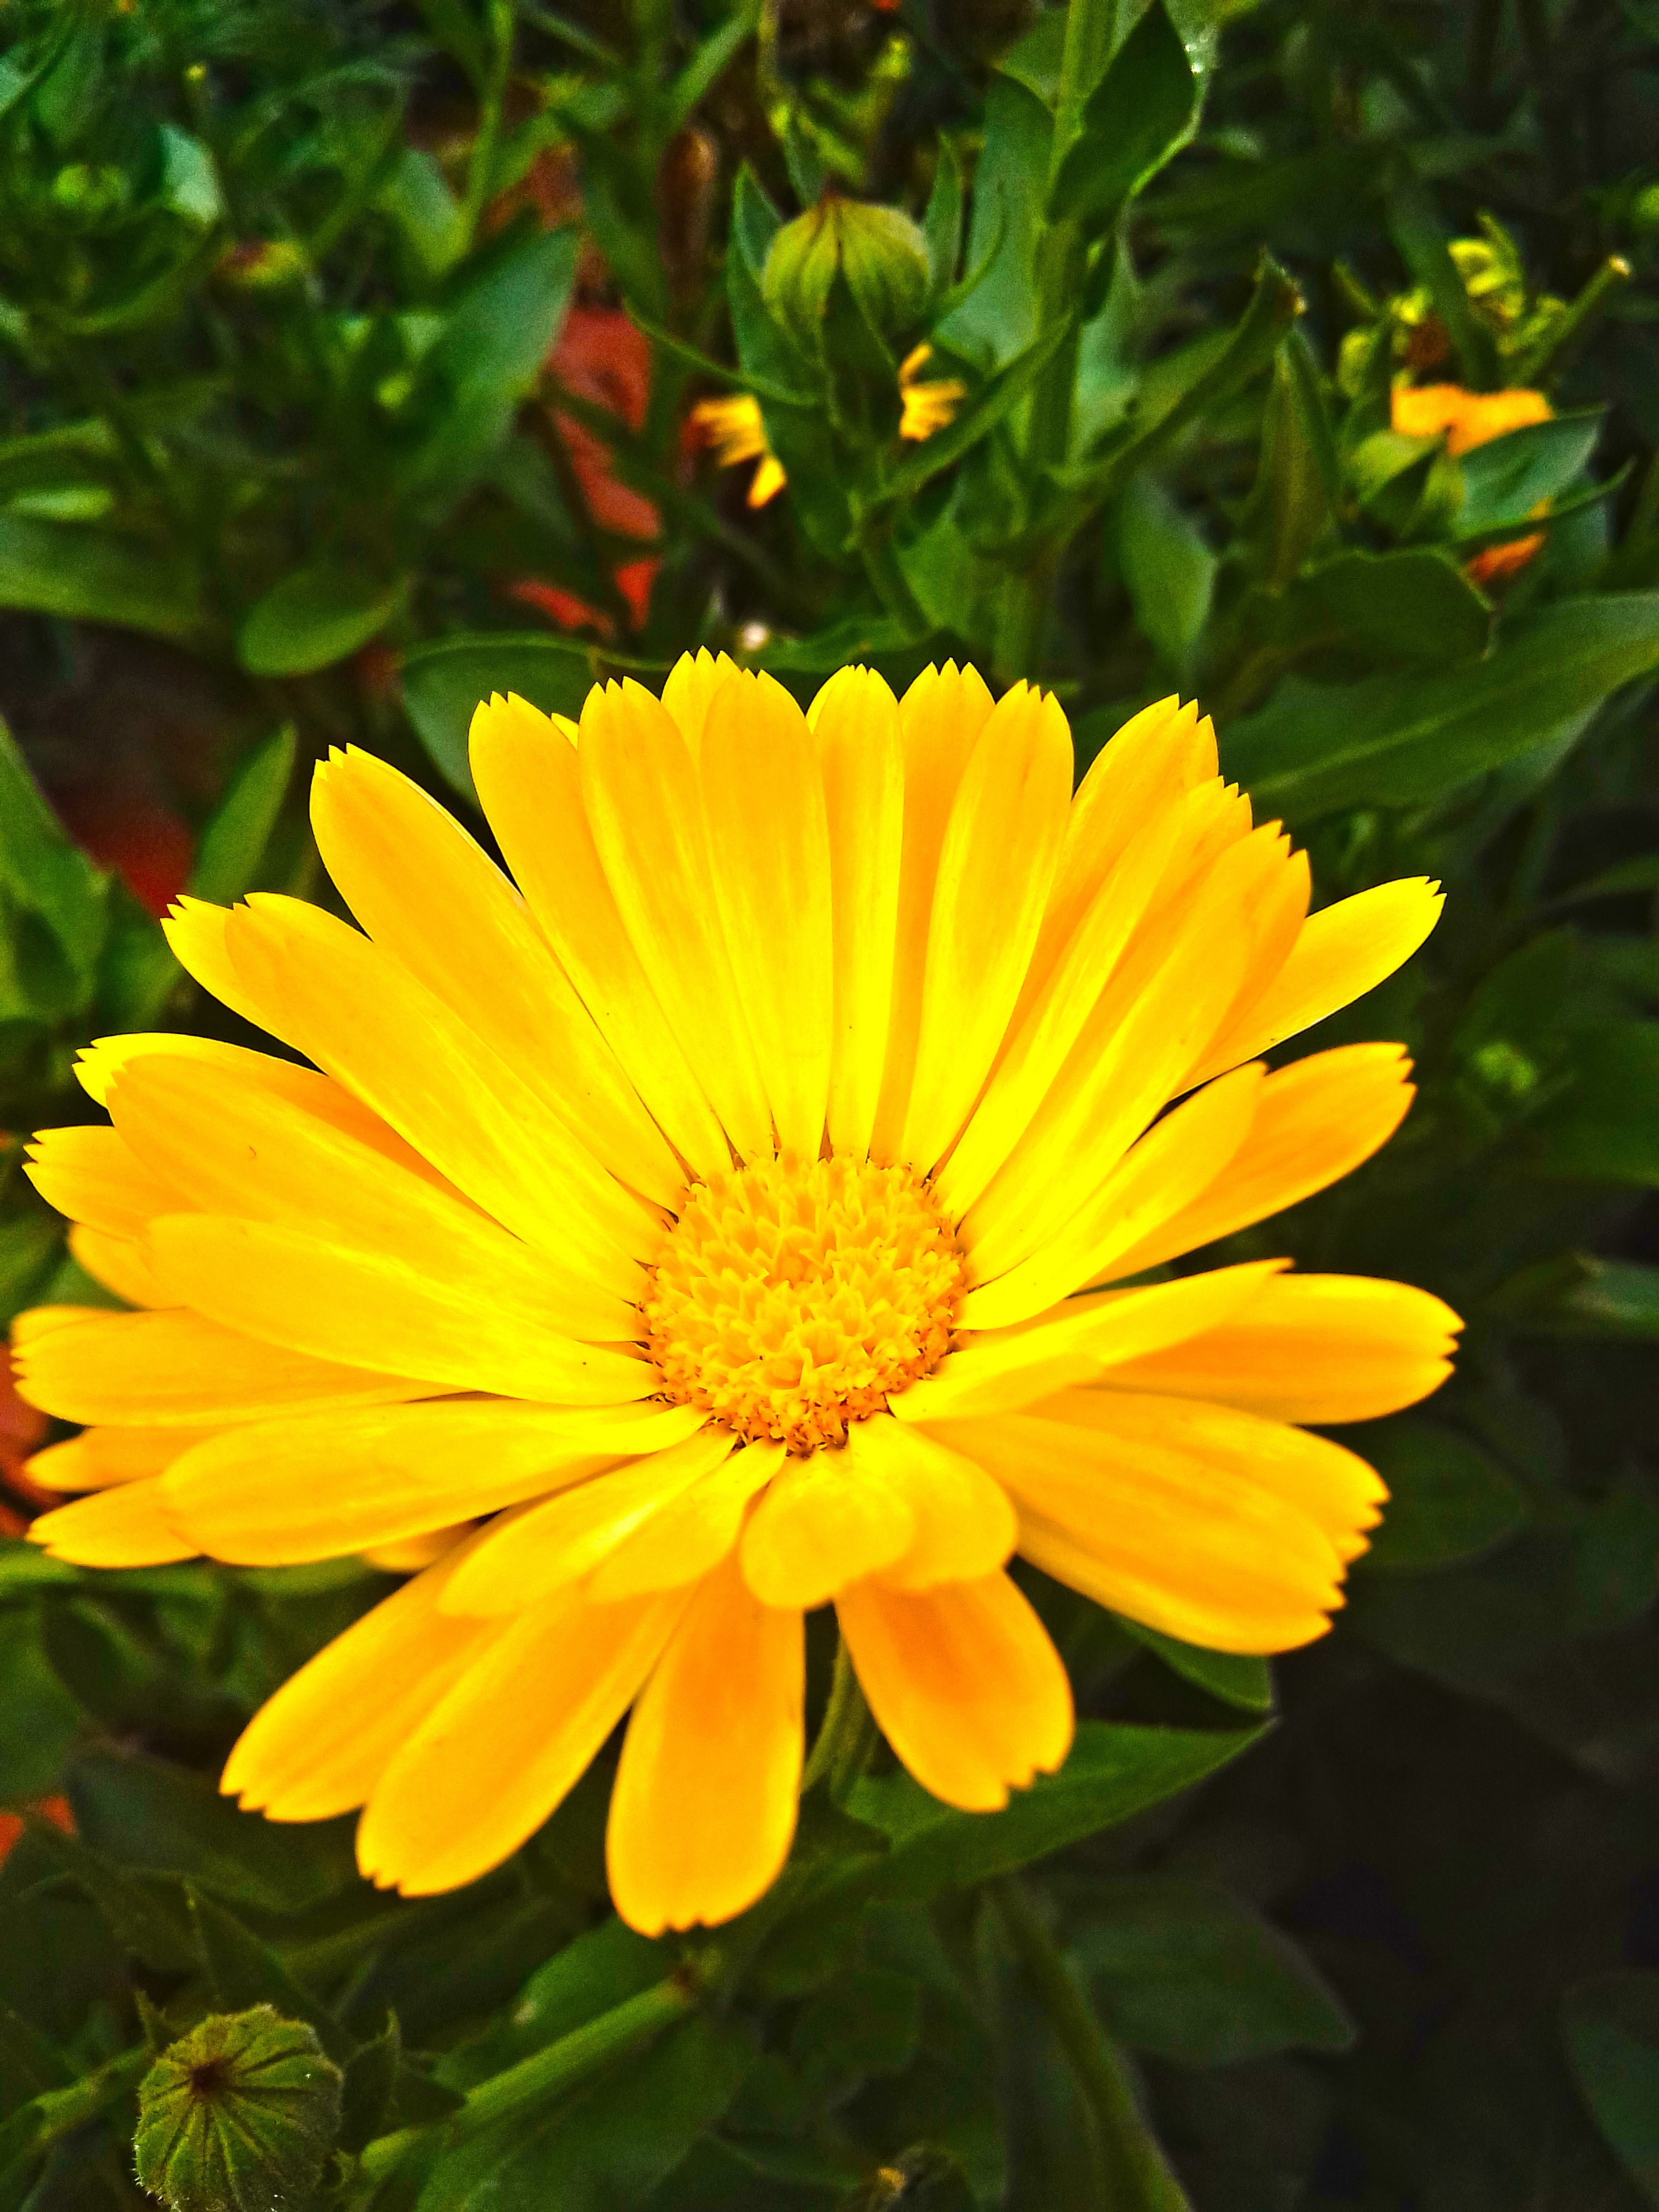 this yellow flower is an impressive flower